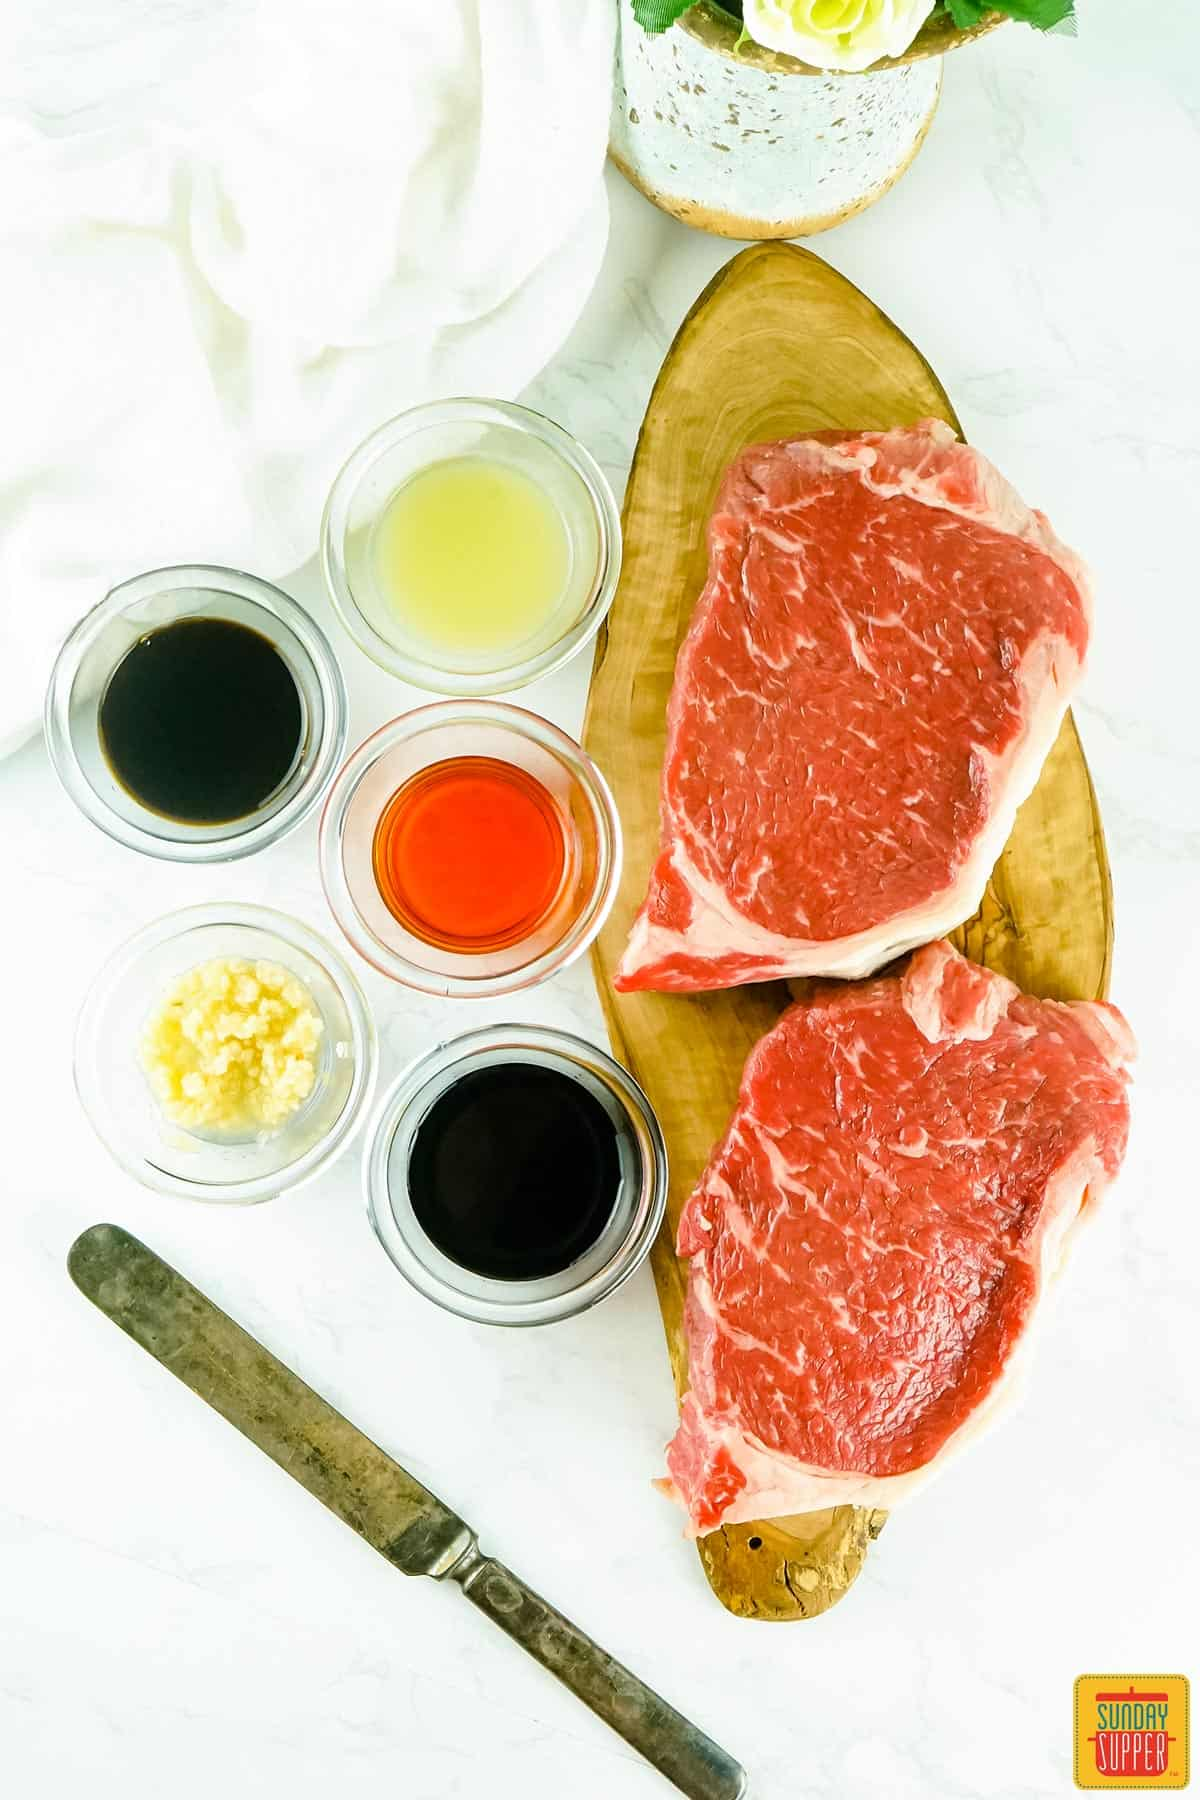 Steaks on a cutting board next to marinade ingredients